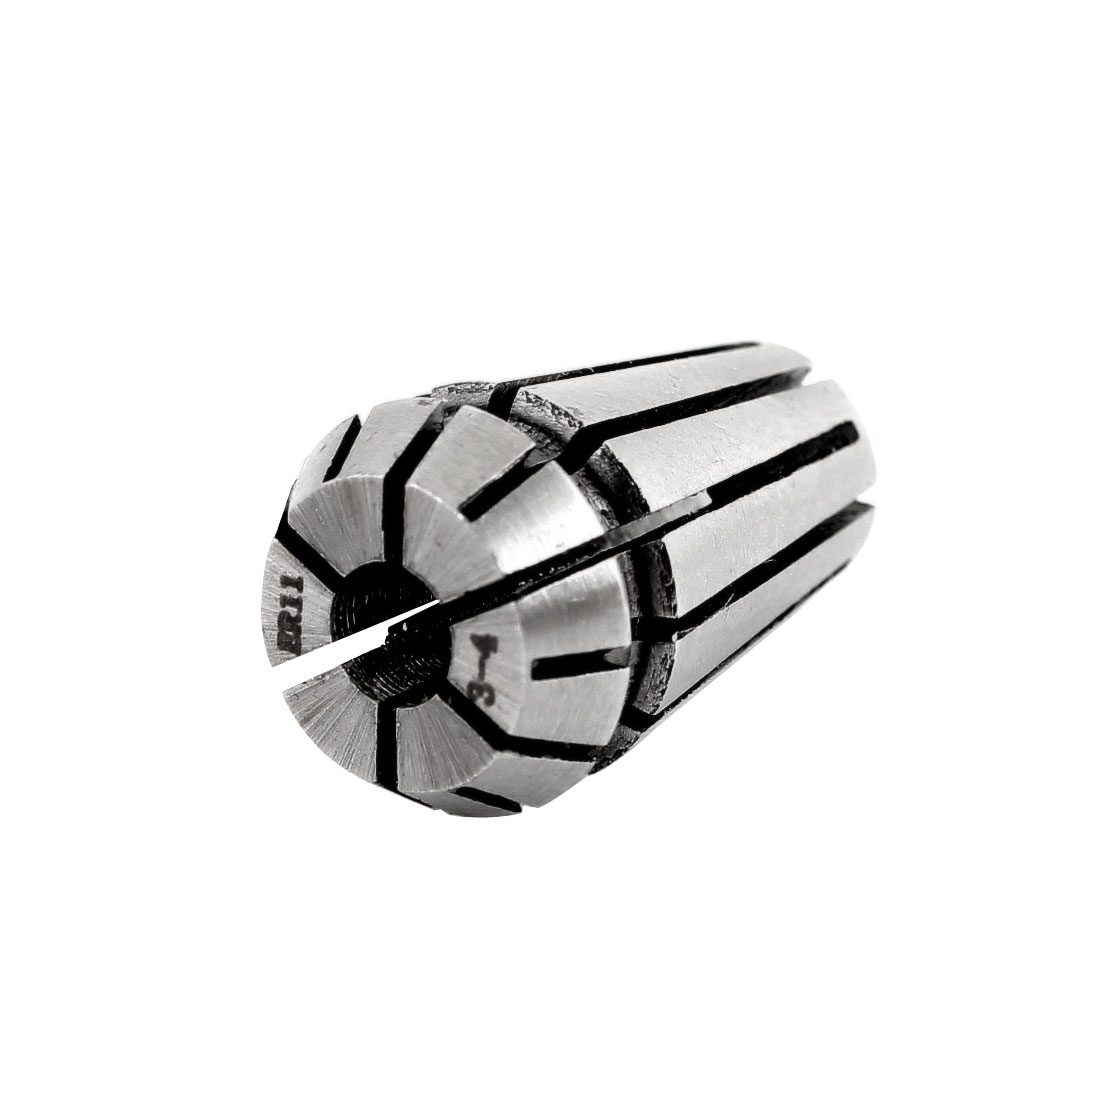 Clamping Range 3-4mm ER11 Precision Spring Collet Reaming Part